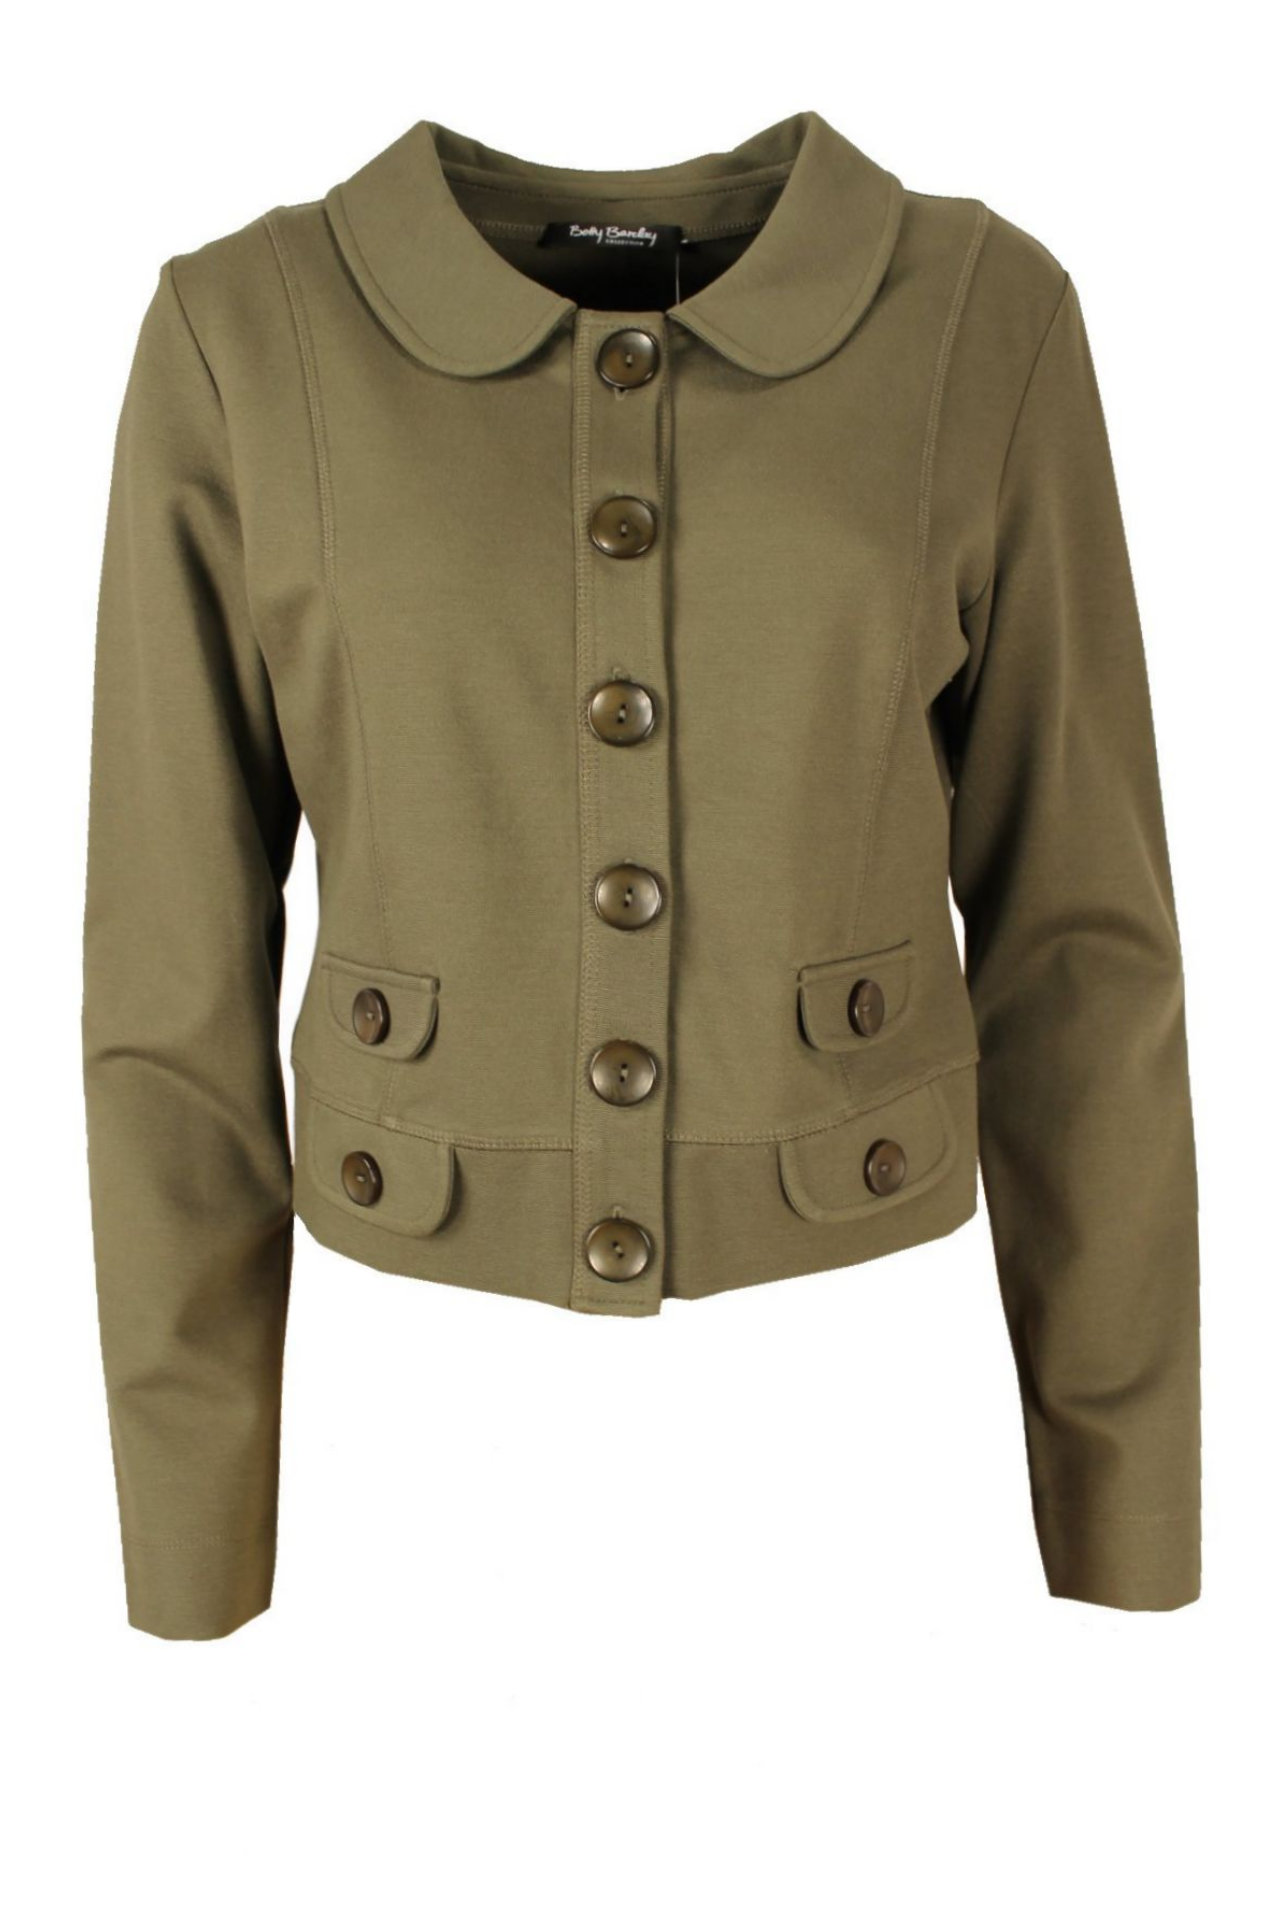 Betty barclay jacket 4630 0709 for Betty barclay